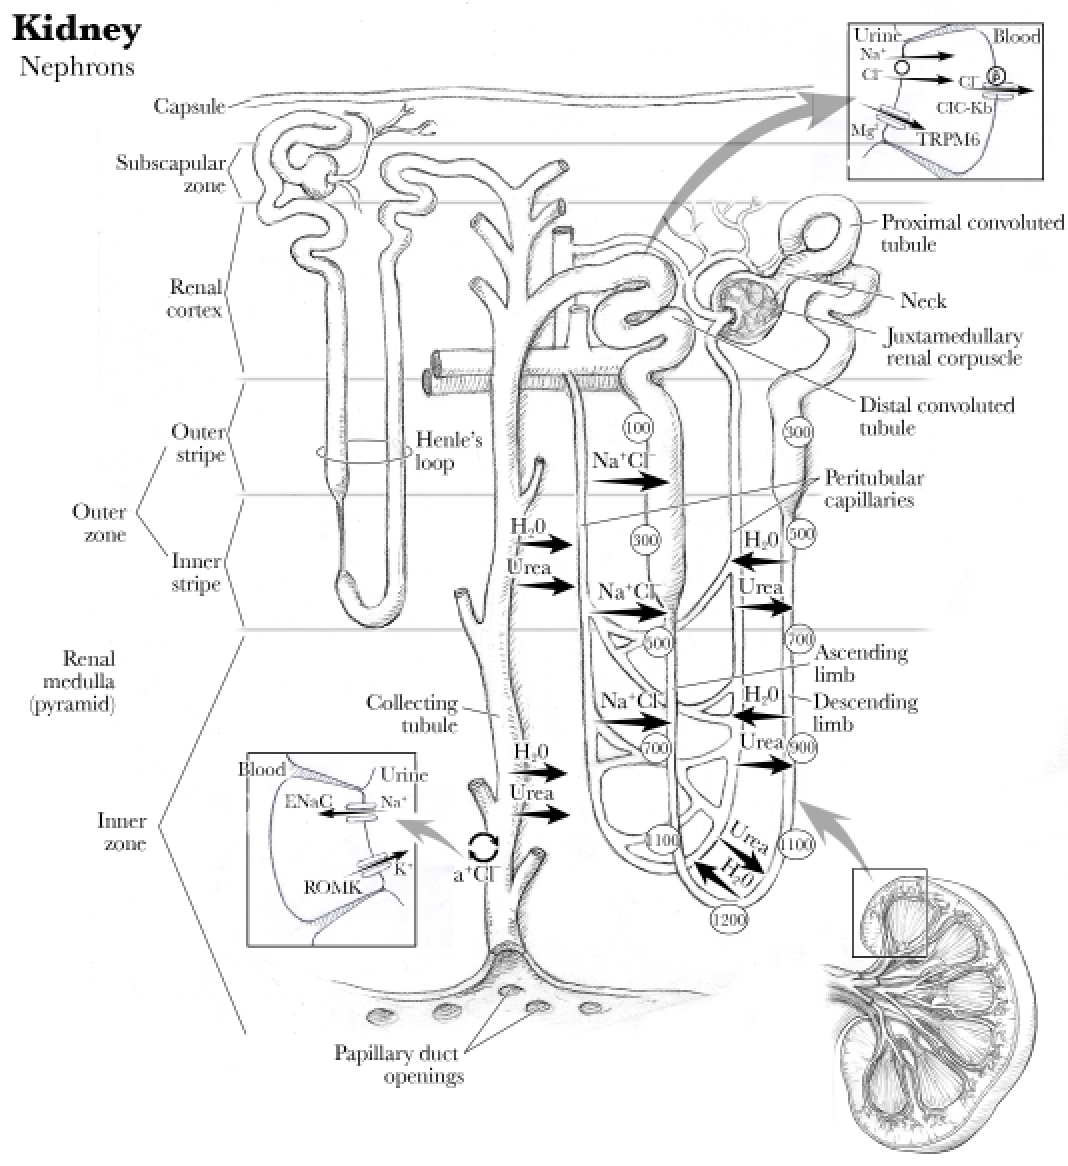 Anatomy Kidney Renal Artery Renal Vein And Ureter